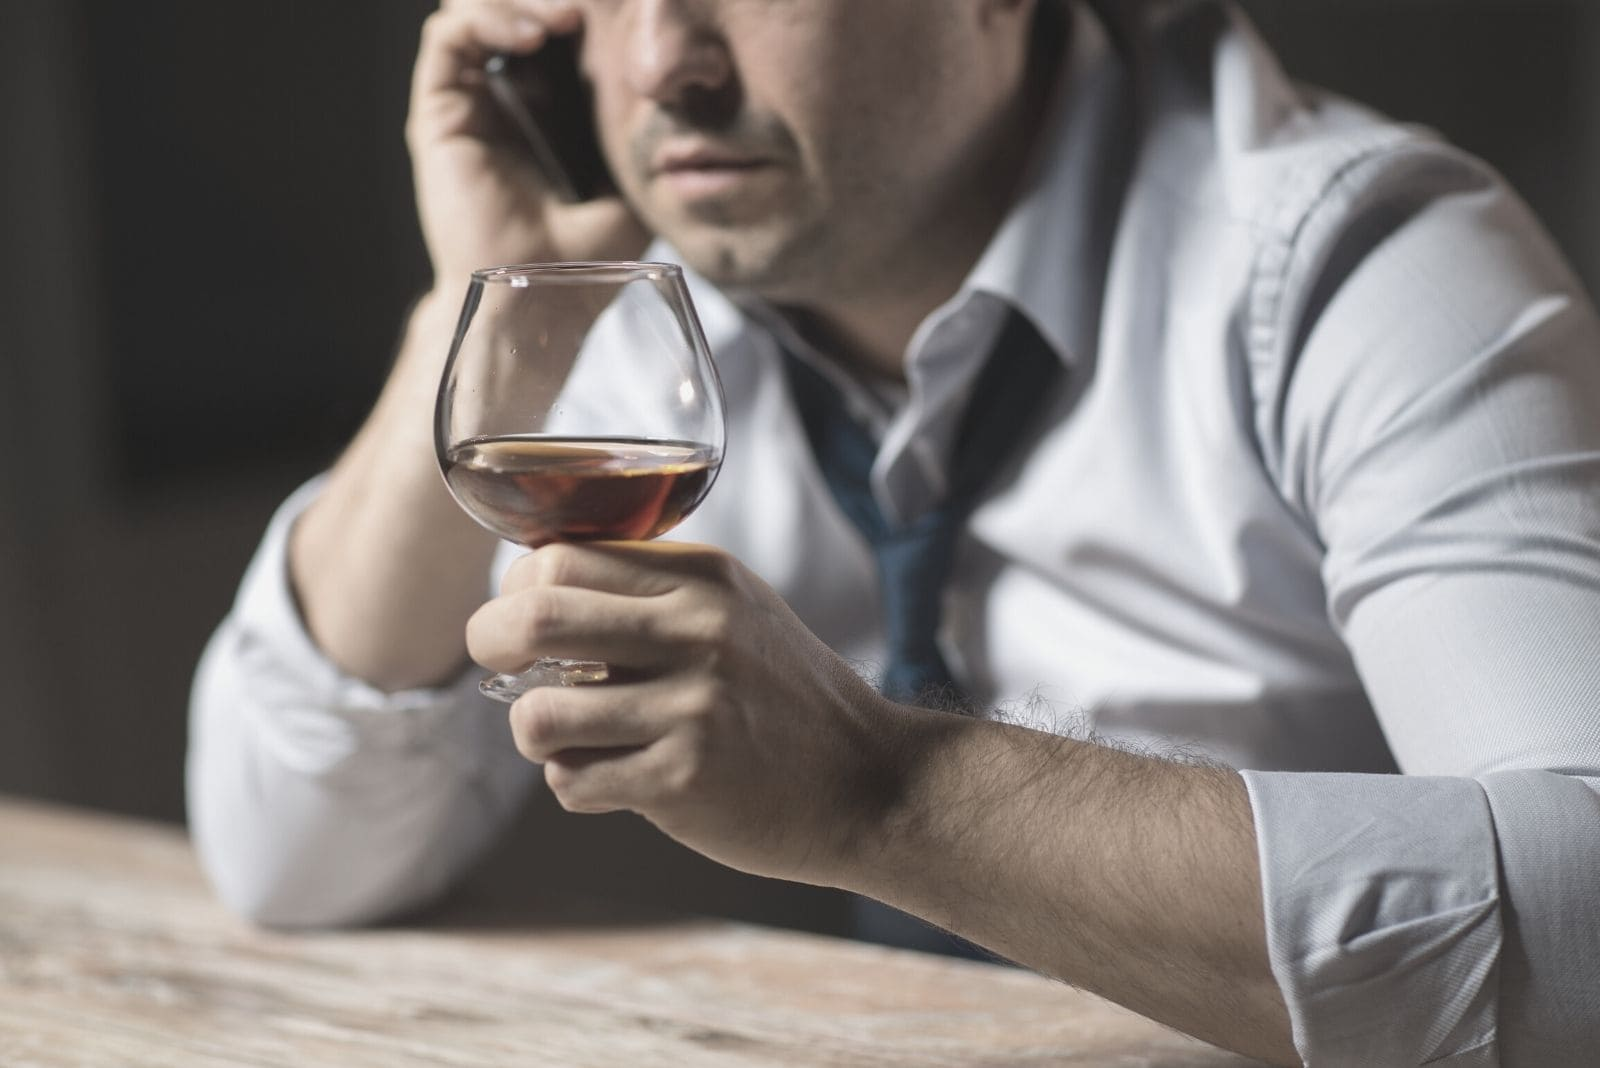 cropped photo of a man drinking alcohol while calling by the phone